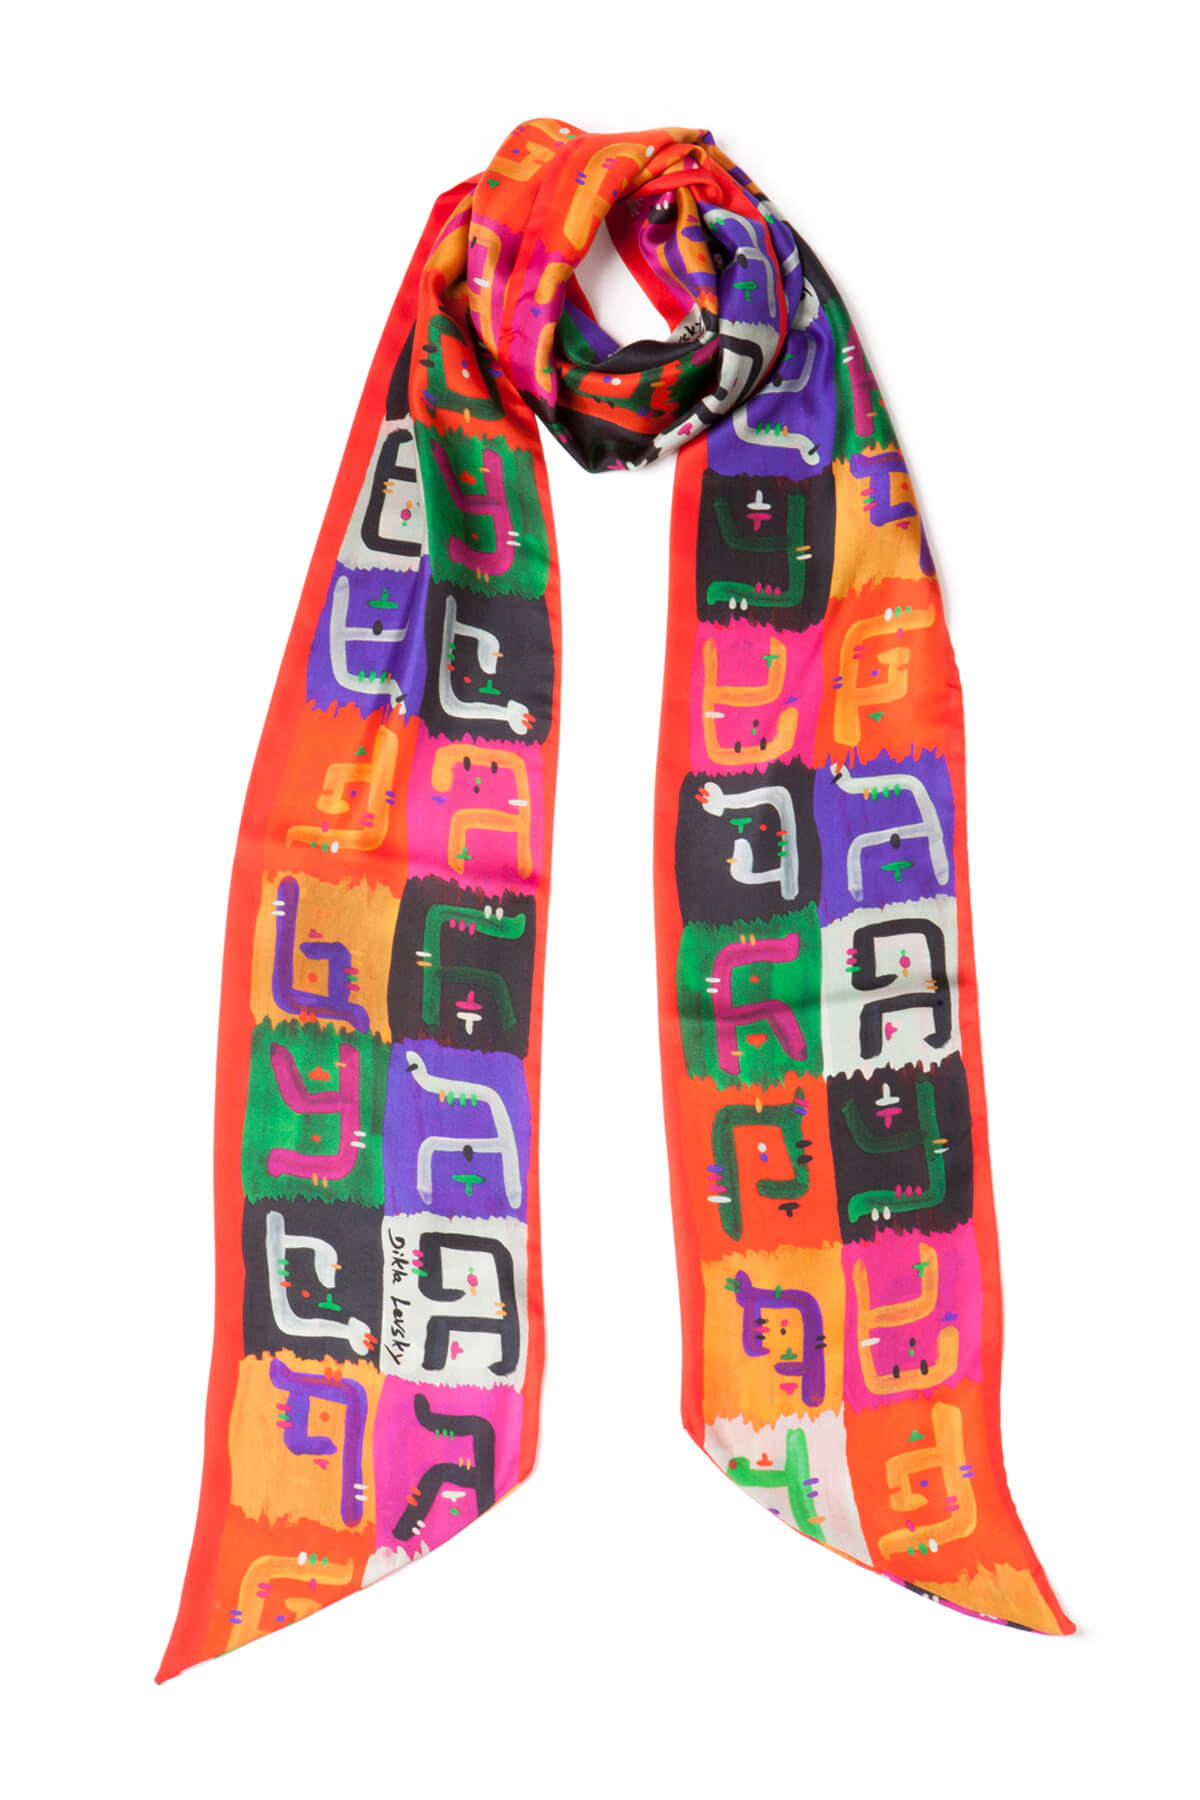 extra long printed silk scarf, silk twilly, dikla levsky, fashion accessories, luxury scarf, scarf style, print and pattern, textile designer, fashion scarf, foulard soie, made in italy